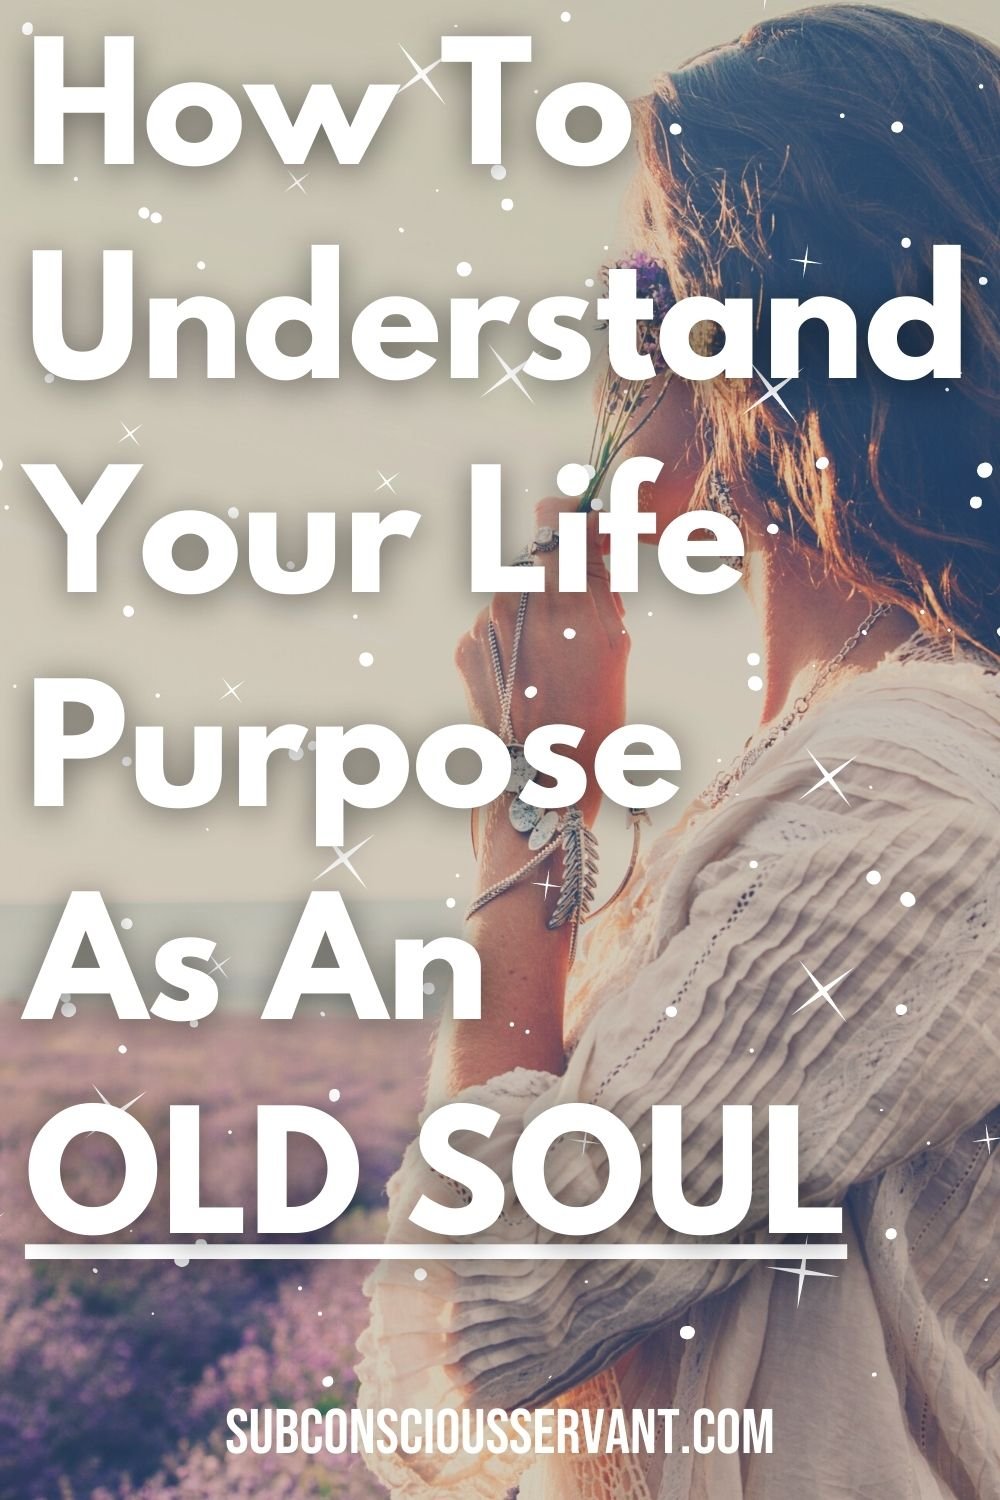 How To Understand Your Life Purpose As  OLD SOUL